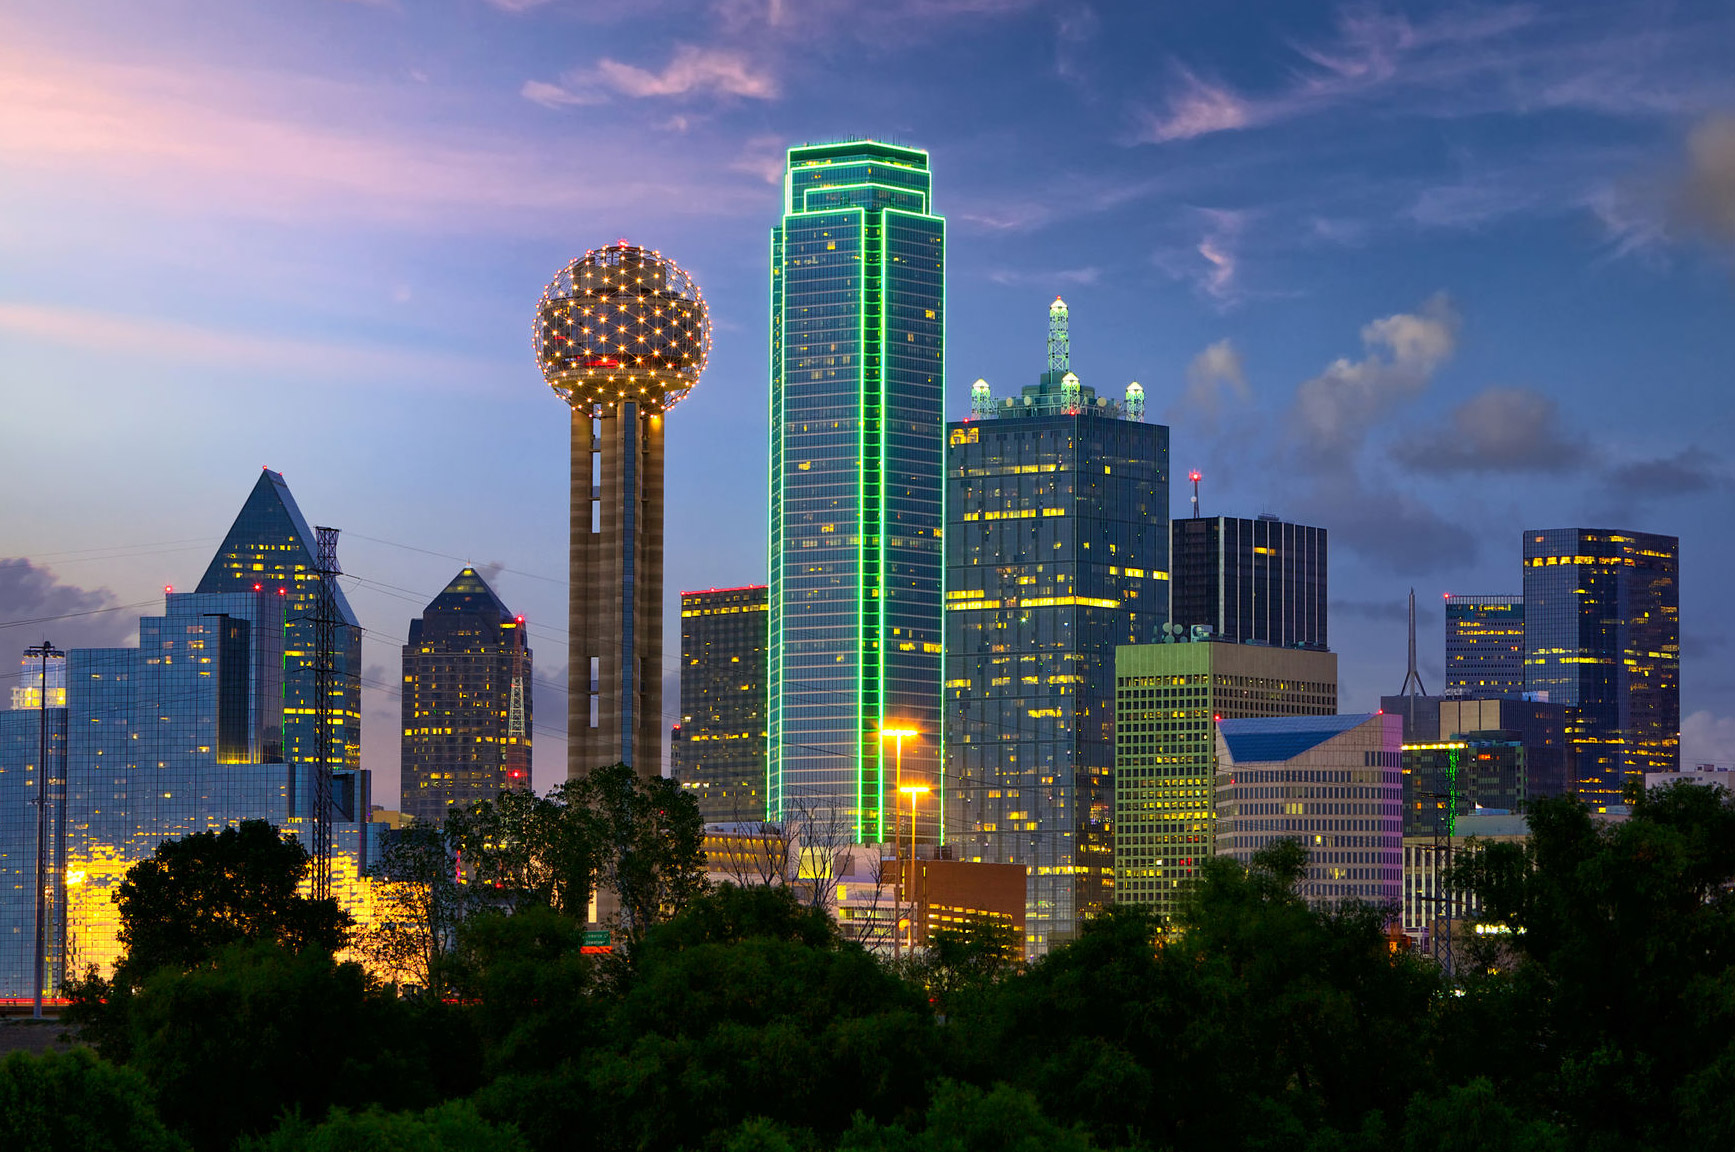 Using U.S. Census data, Lawnstarter compiled a list of the top 15 cities that are sending the most residents to the Dallas - Fort Worth area.